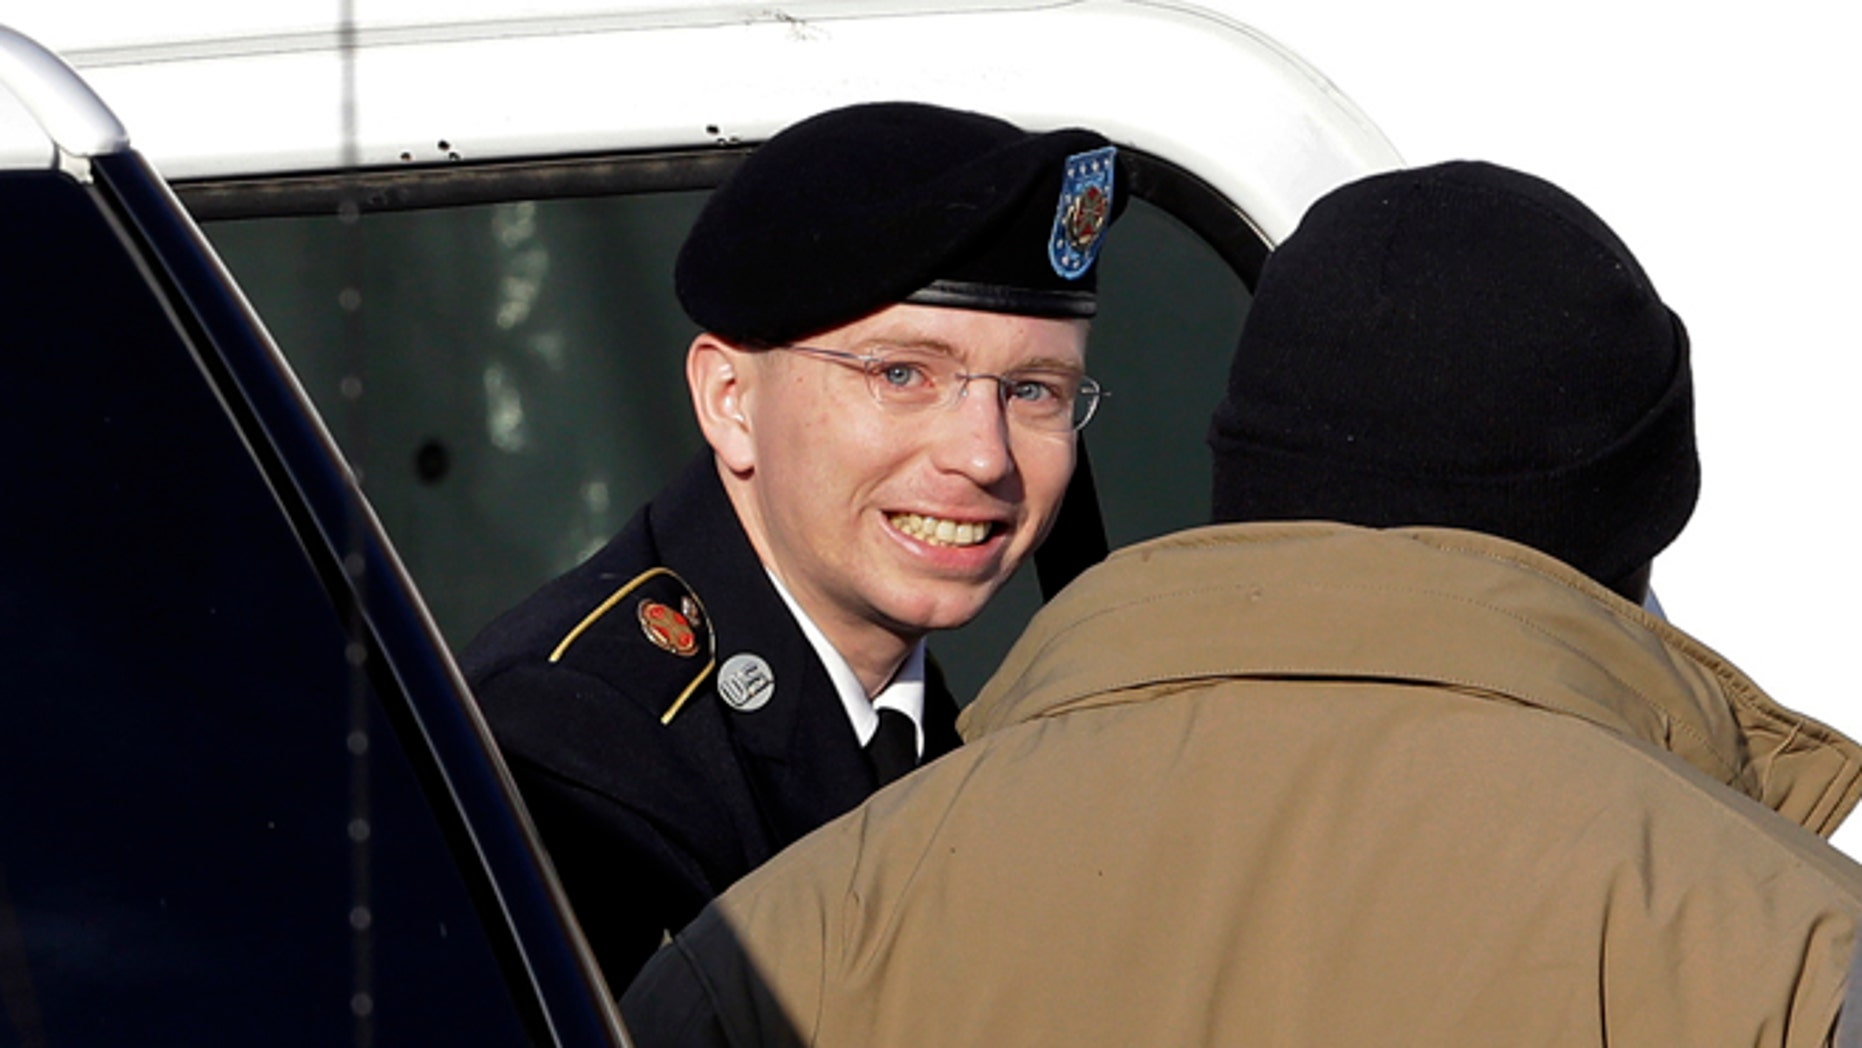 Nov. 28: Army Pfc. Bradley Manning, center, steps out of a security vehicle as he is escorted into a courthouse in Fort Meade, Md.